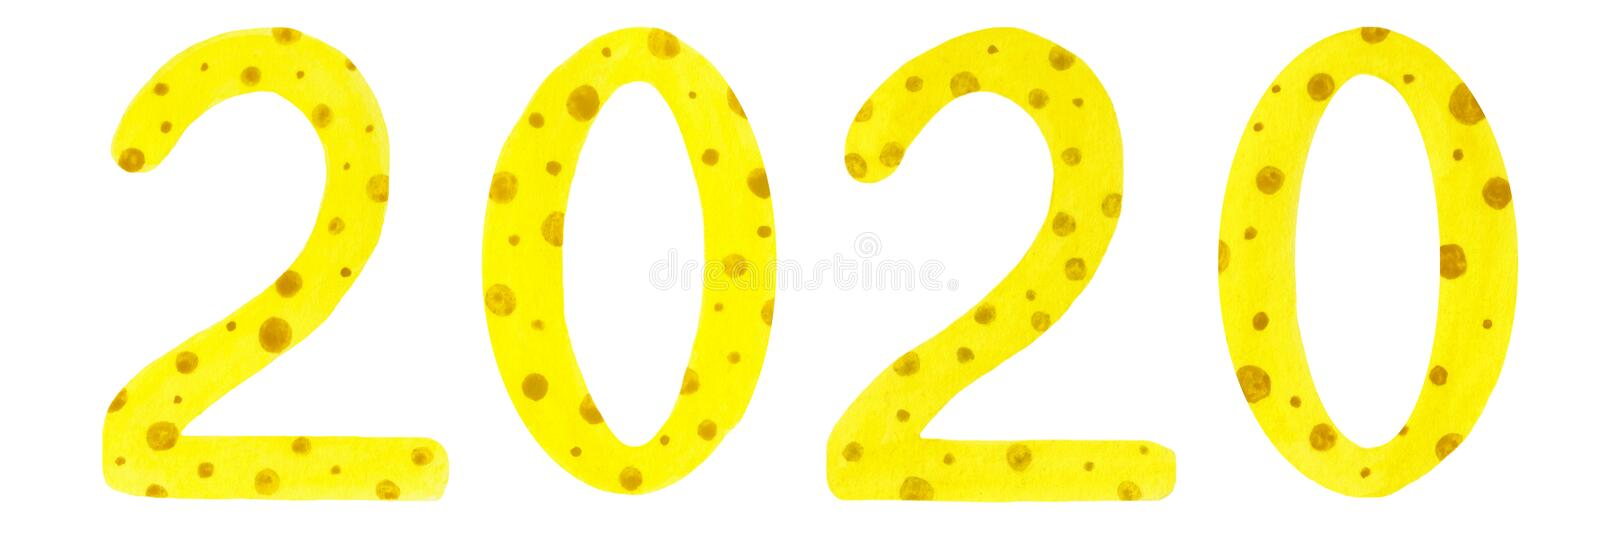 Watercolor illustration of 2020 cheese style numerals stock illustration